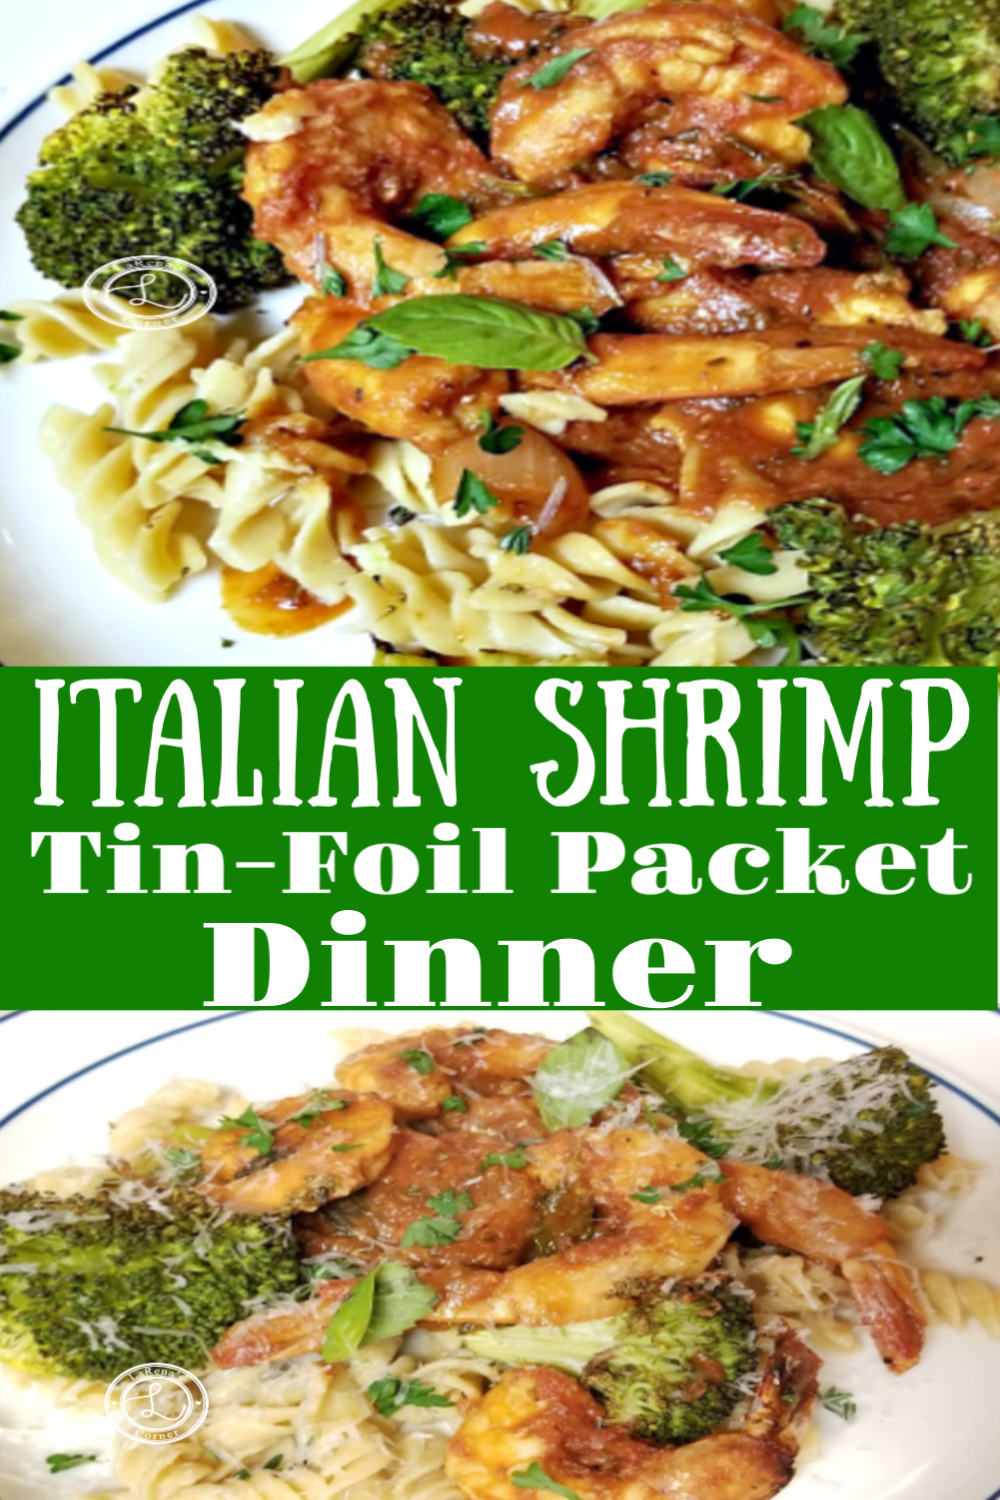 2 pictures. One of the Italian Shrimp Tin-Foil Pack dinner. One with Parmesan on top.